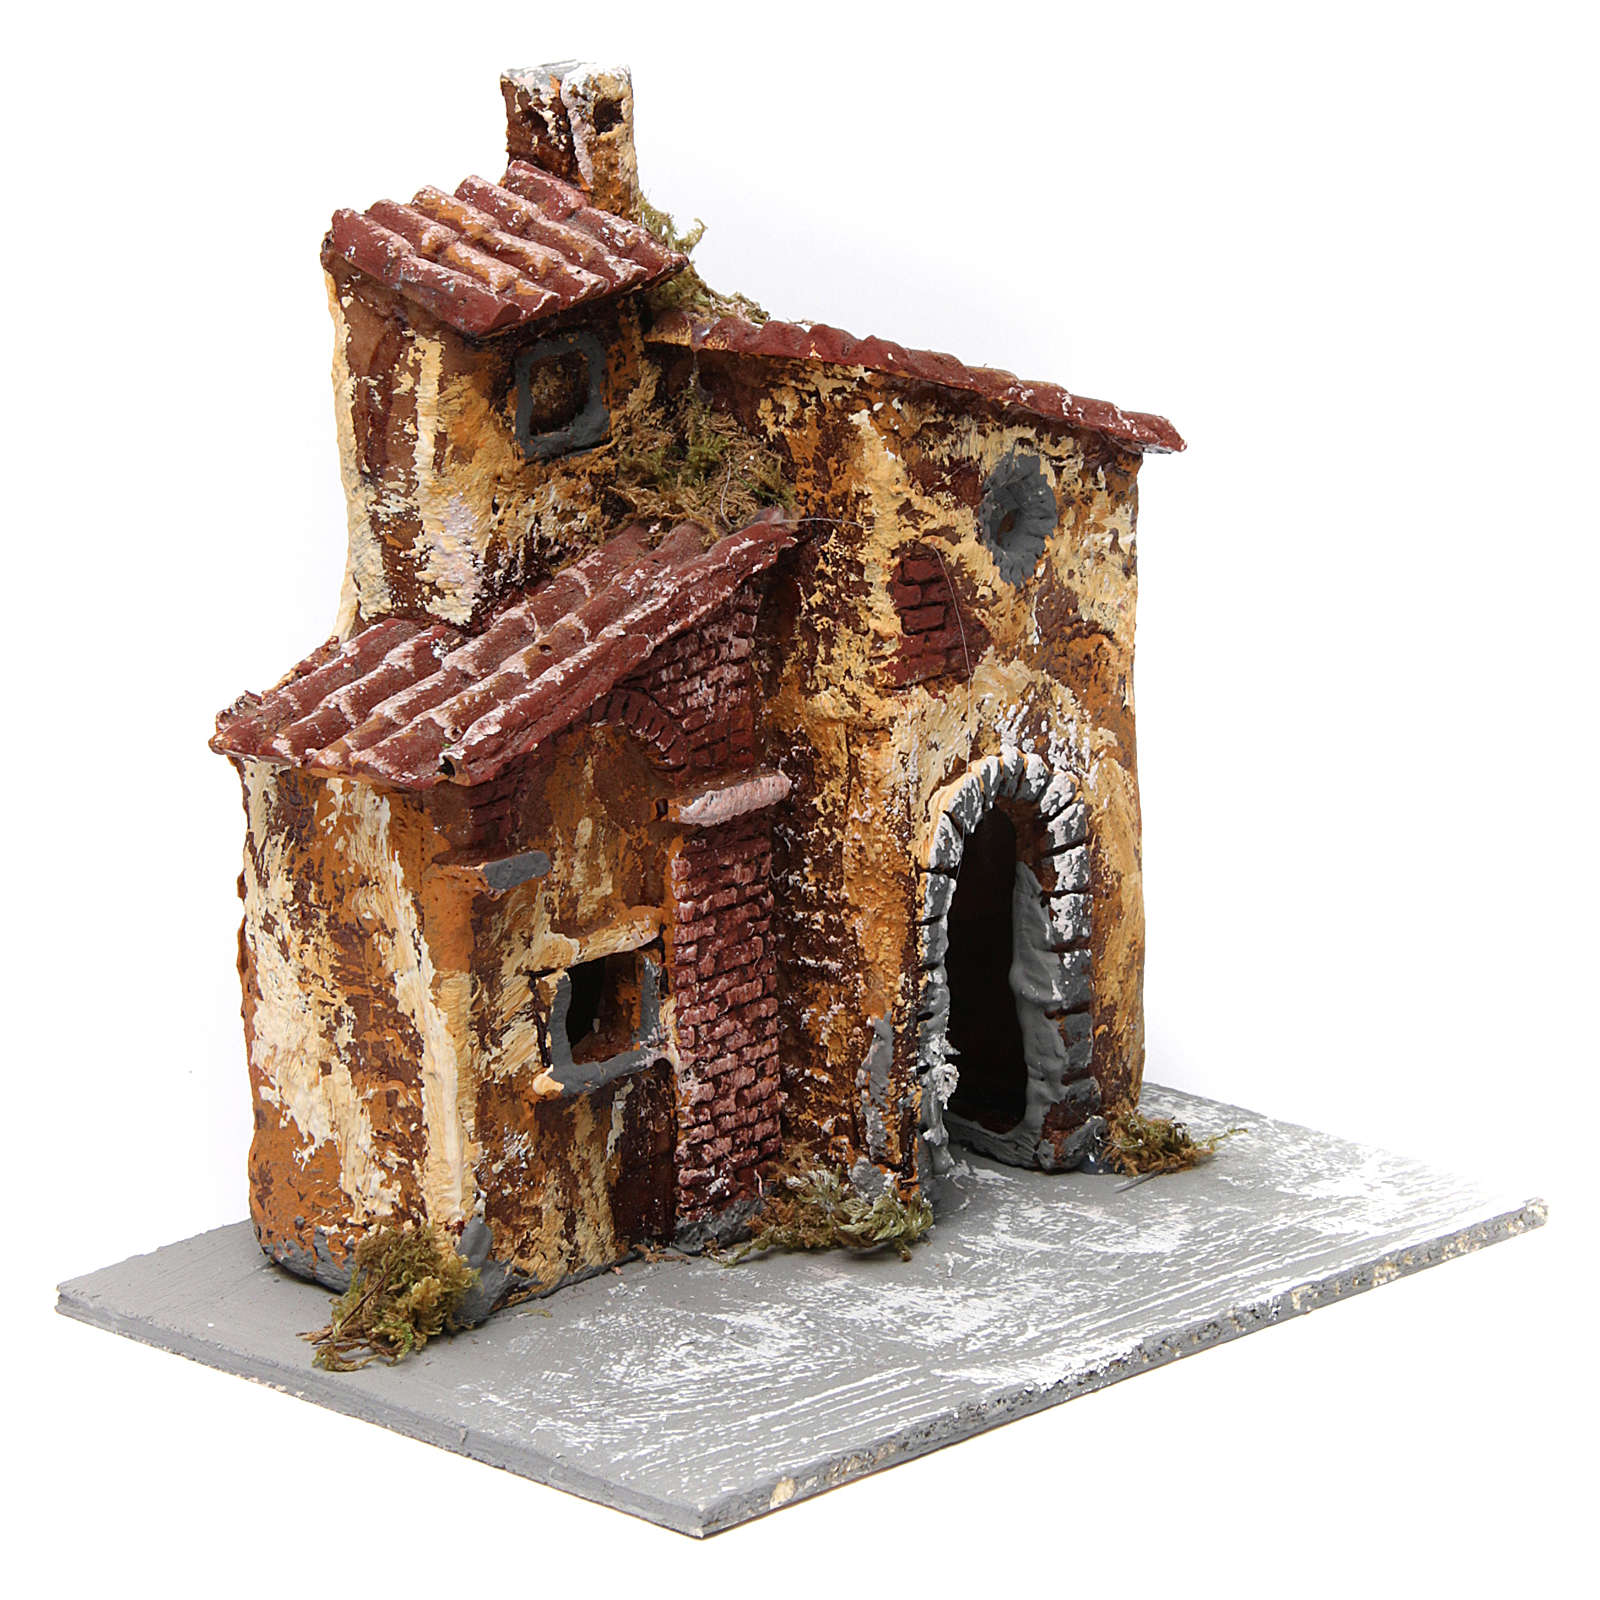 House with open door and oval window 15x15x15 cm, Neapolitan nativity scene 4